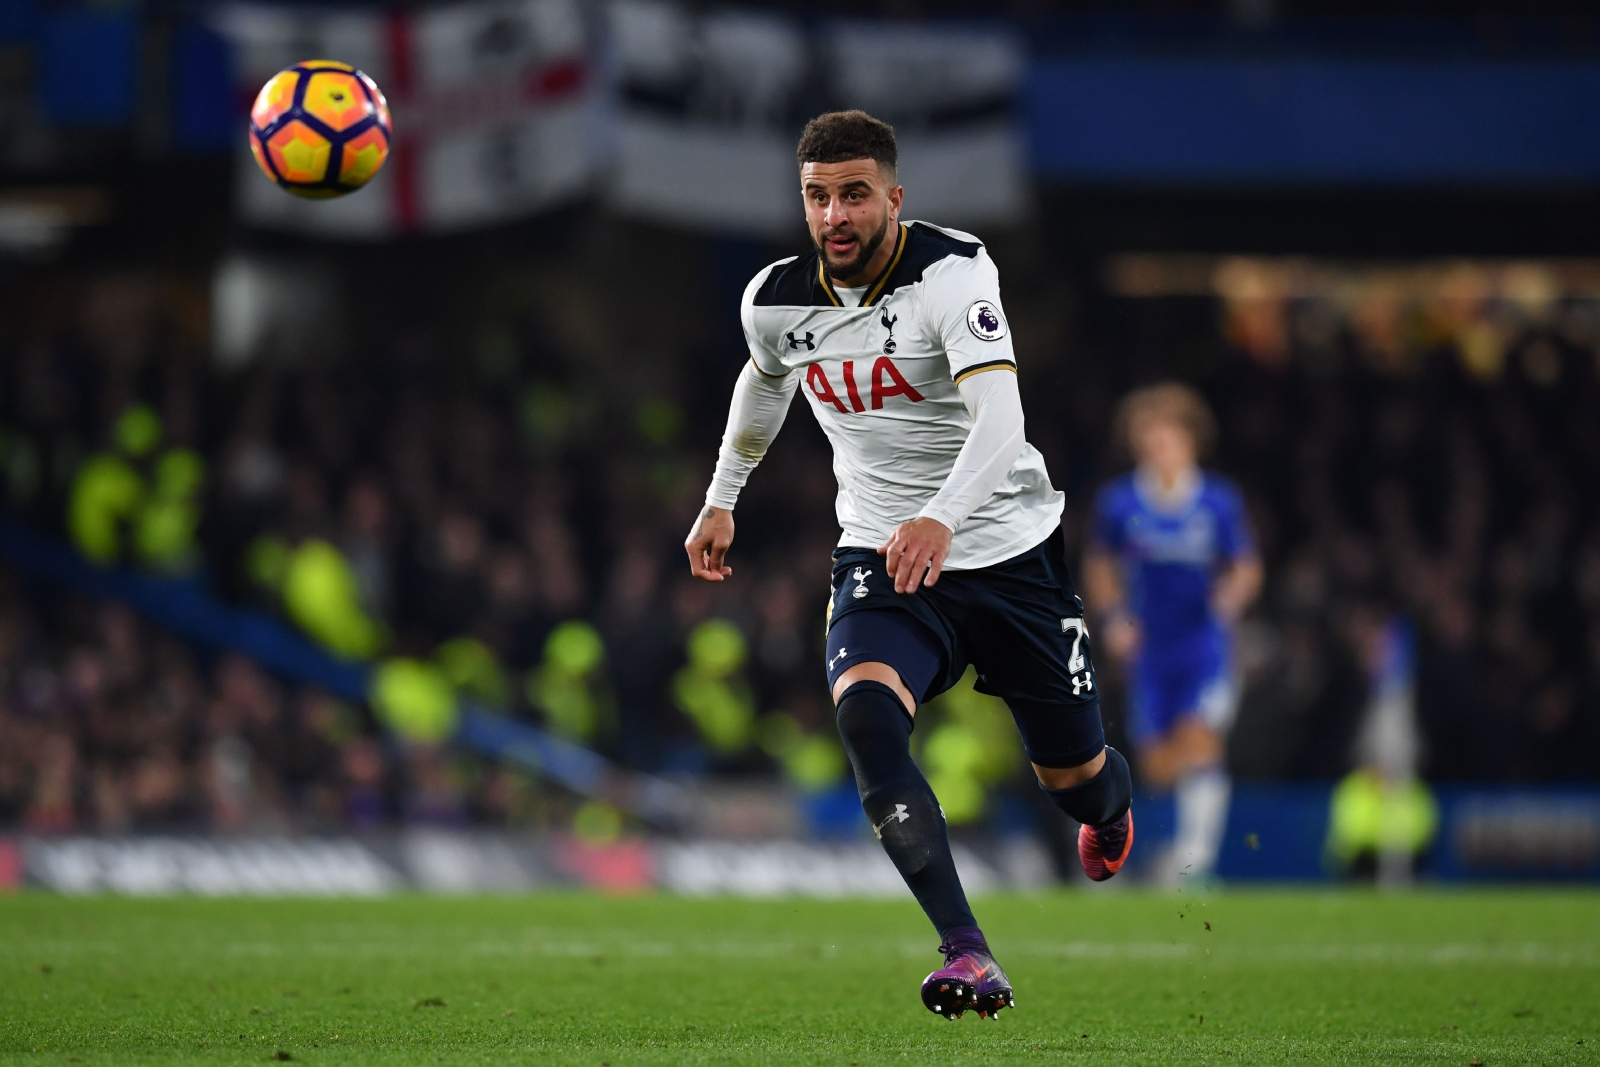 Kyle Walker on the ball